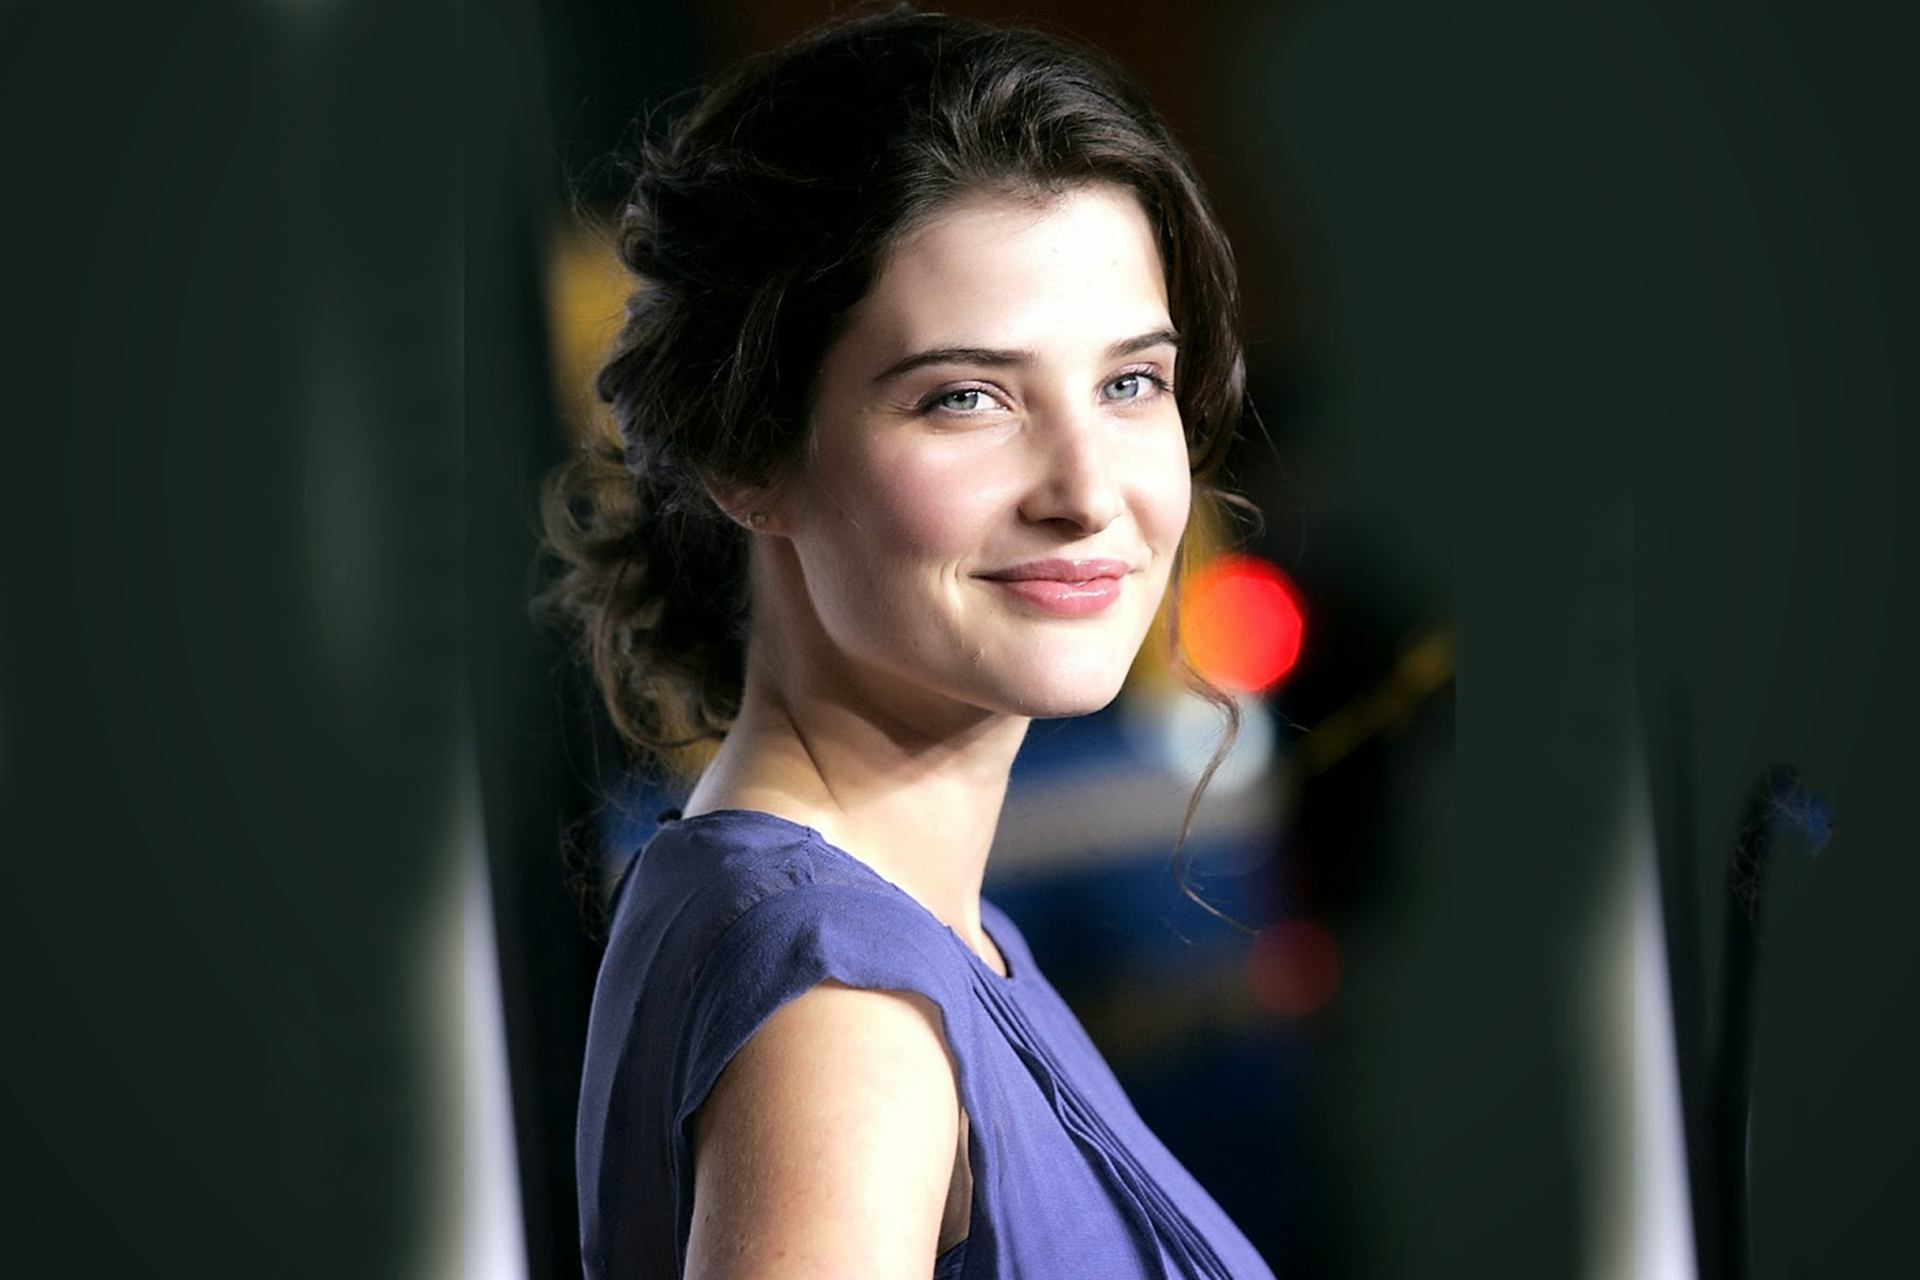 1920x1280 - Cobie Smulders Wallpapers 10